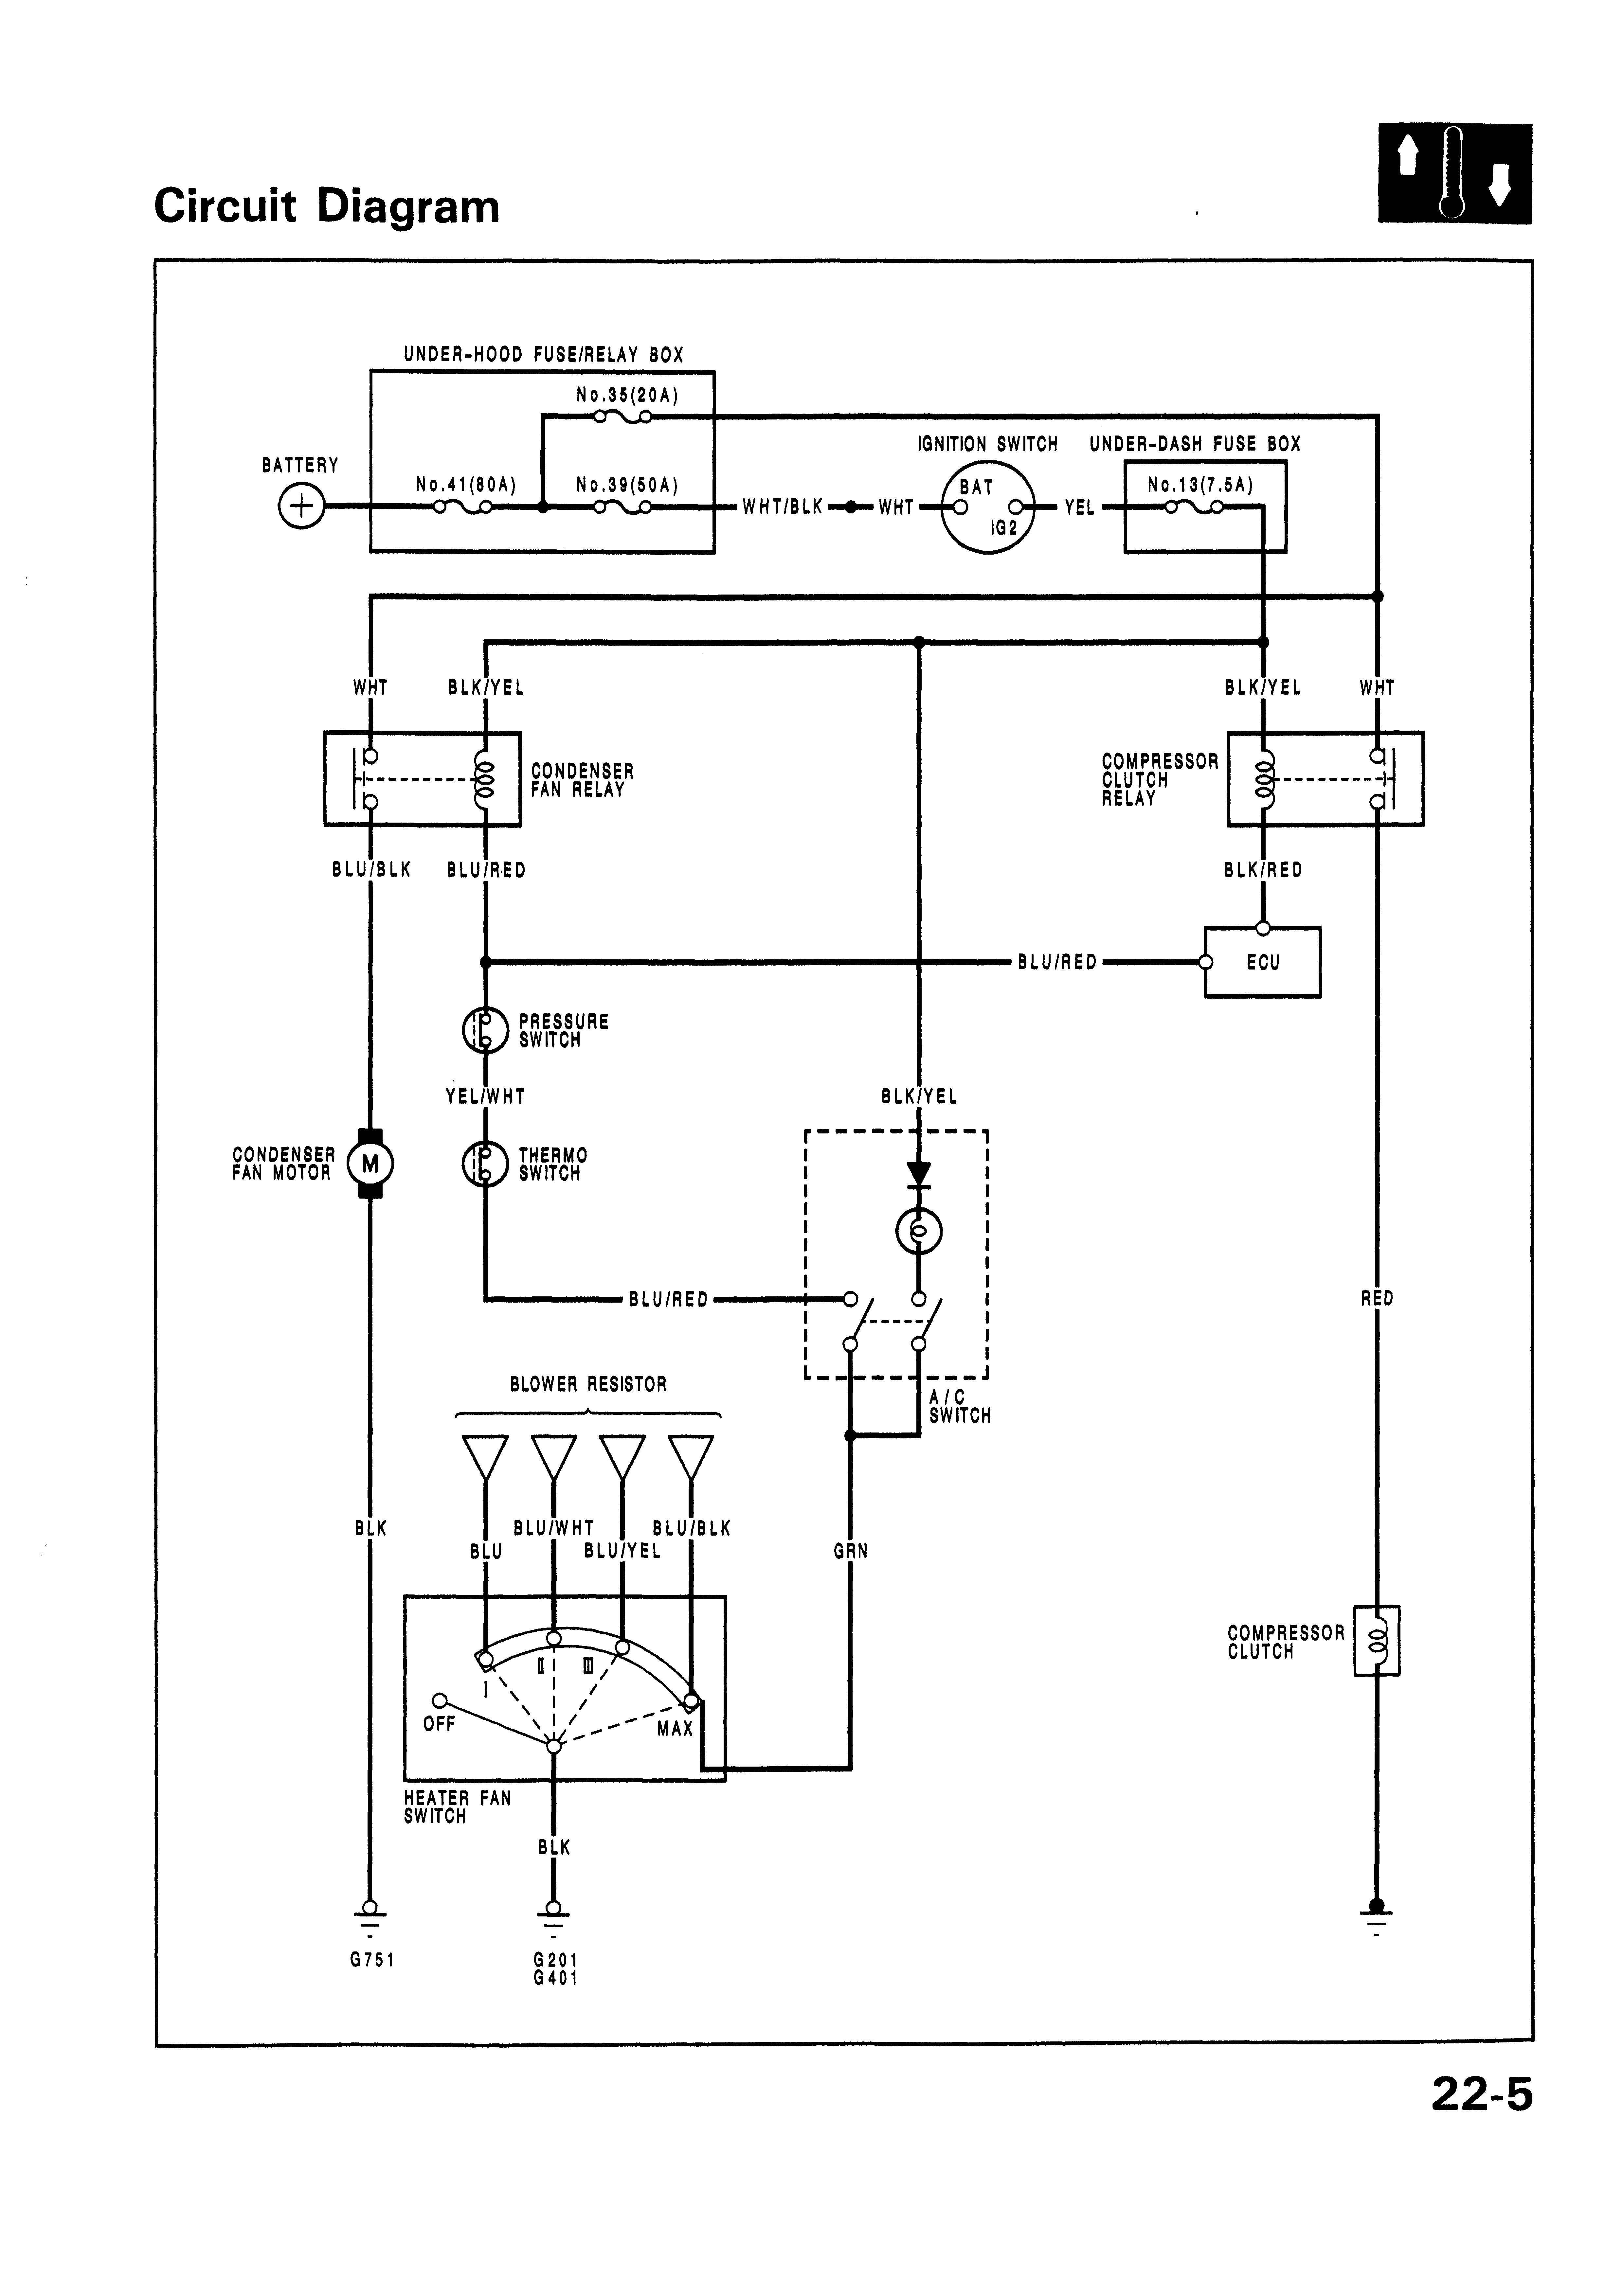 Wiring Diagram Car Air Conditioning